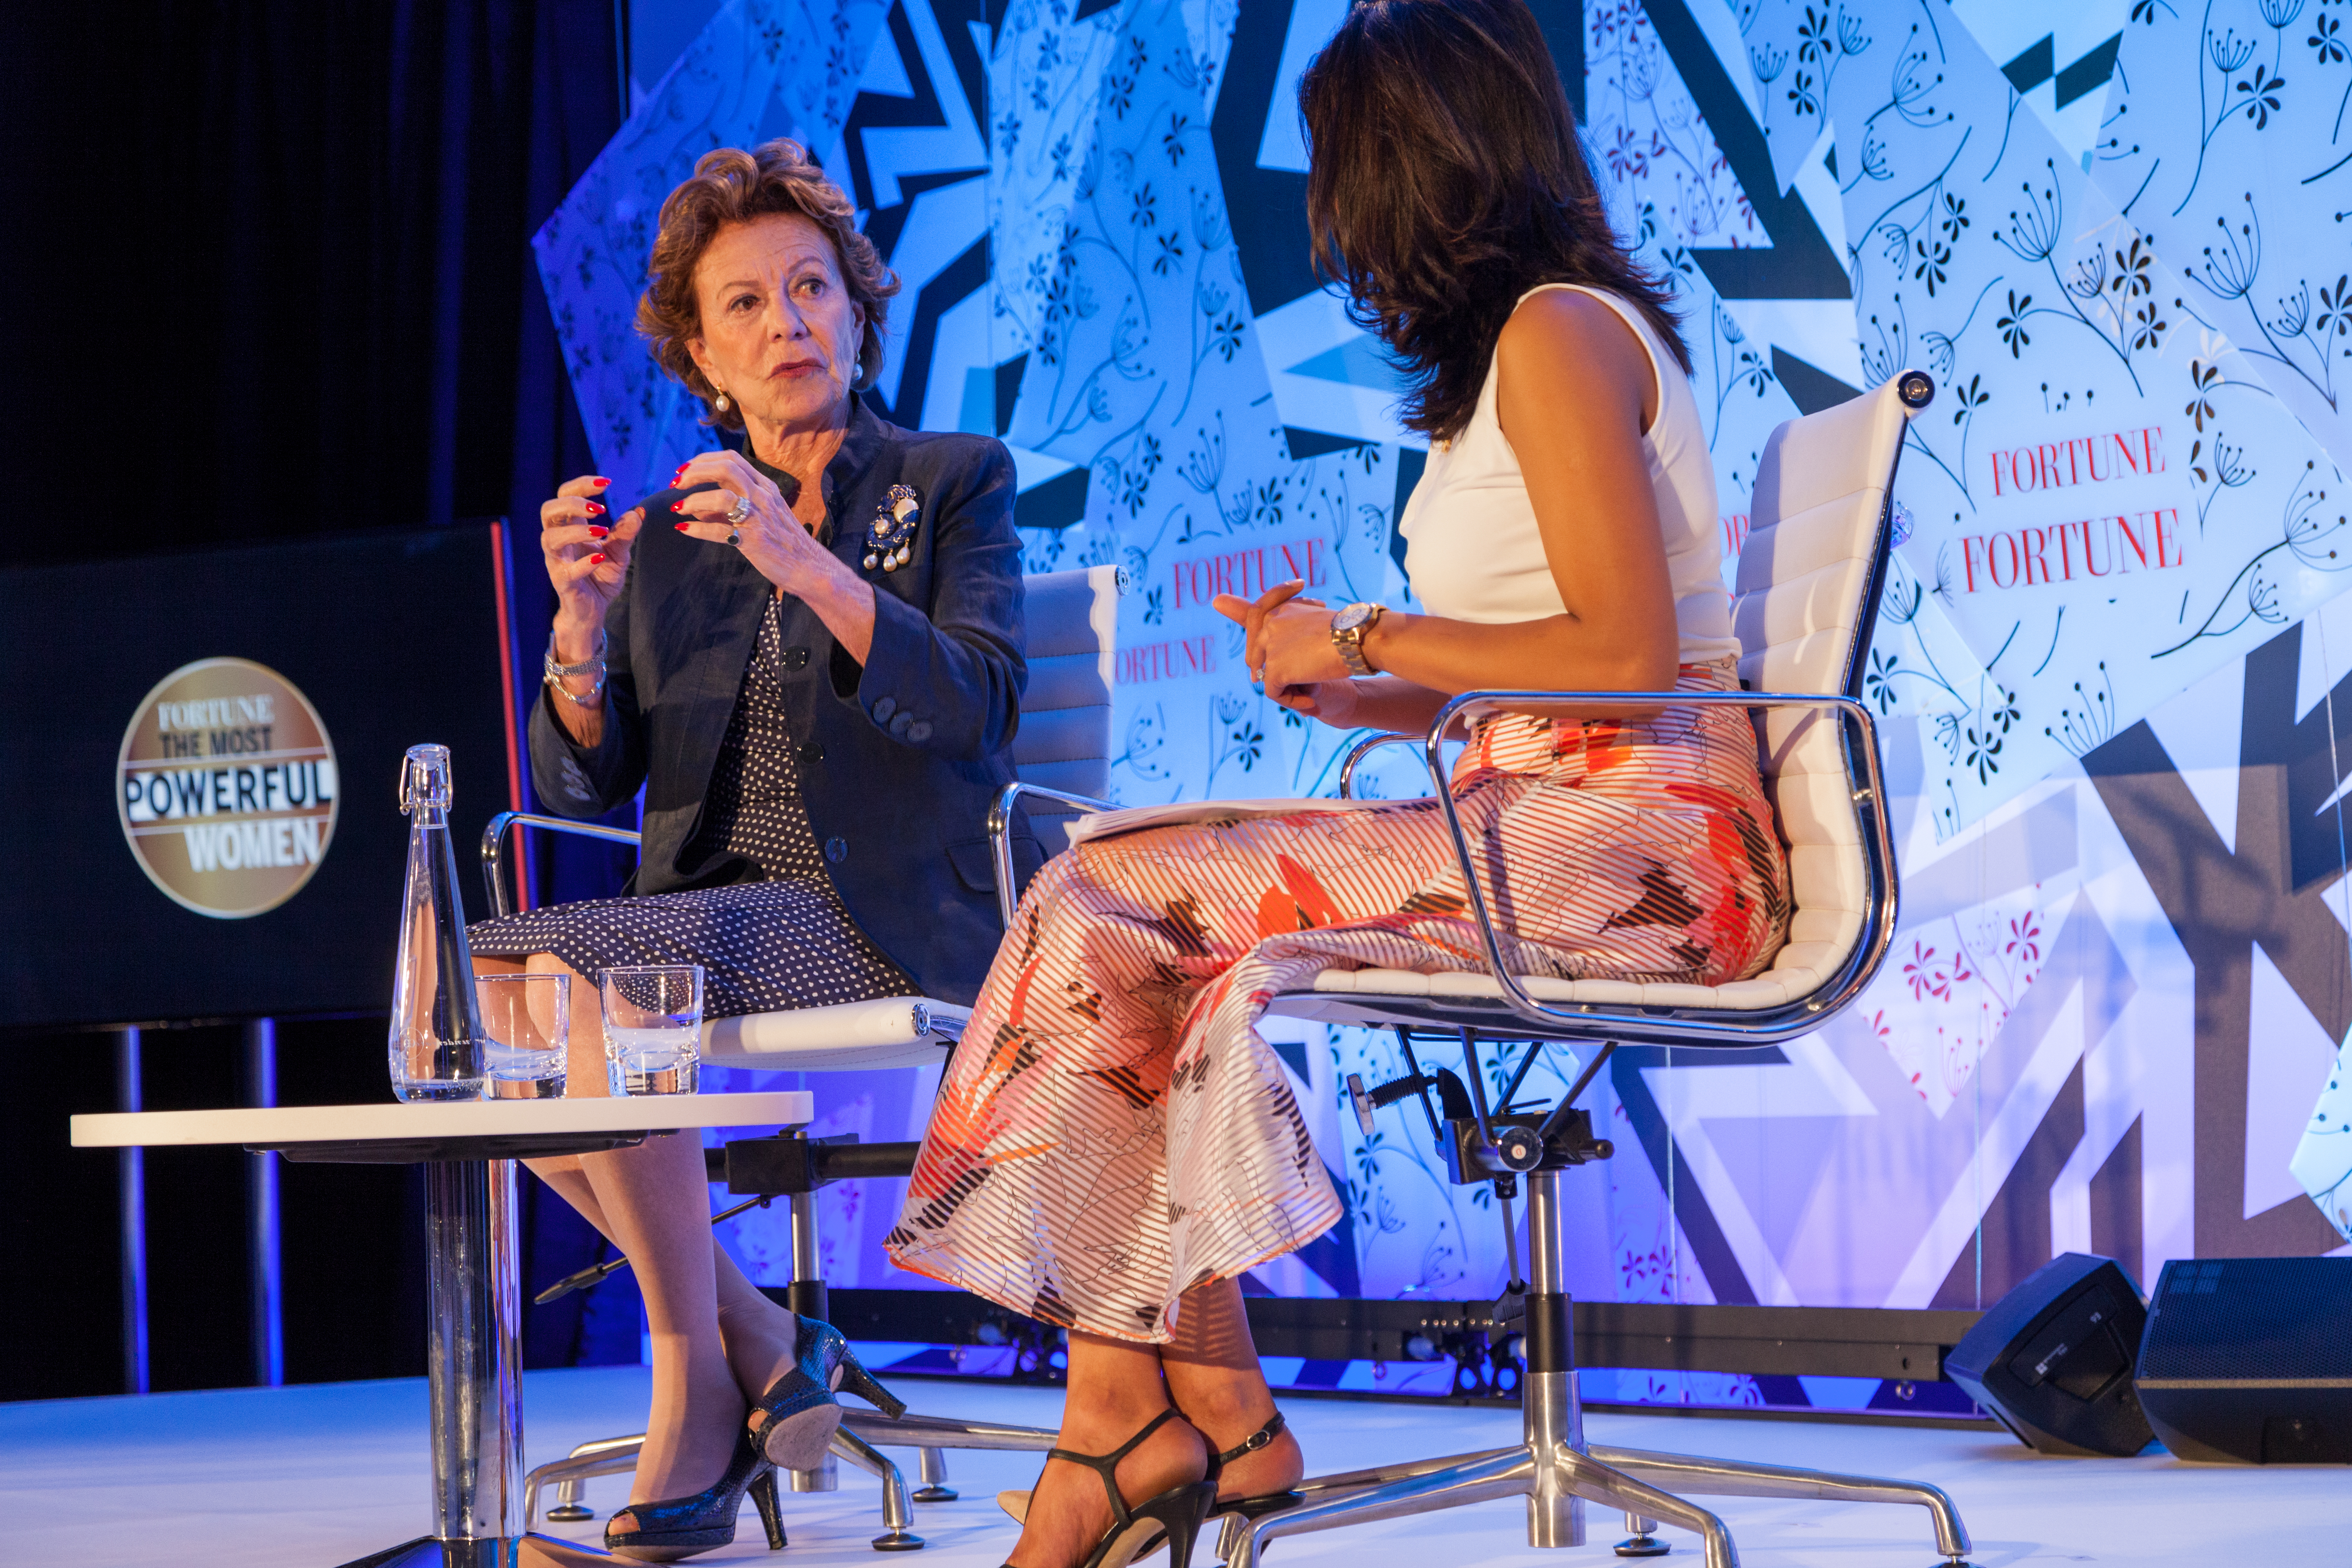 Neelie Kroes, special envoy, Startup Delta for The Netherlands talks to Fortune's Maithreyi Seetharaman.